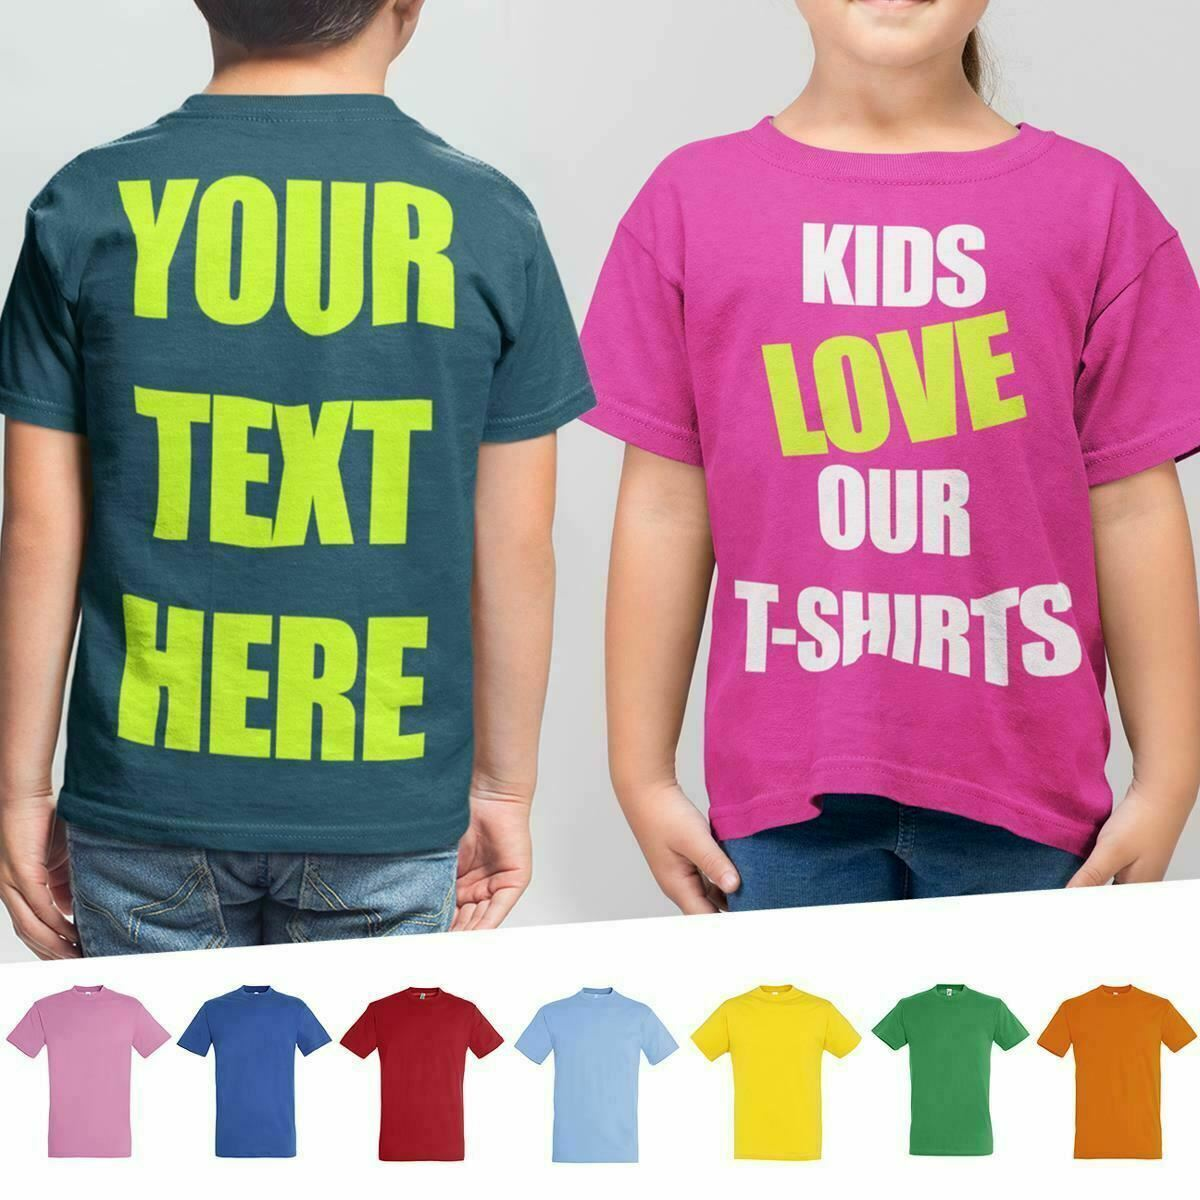 New Custom Printed Text Boys or Girls Personalised Childrens Cotton T-Shirts Tee